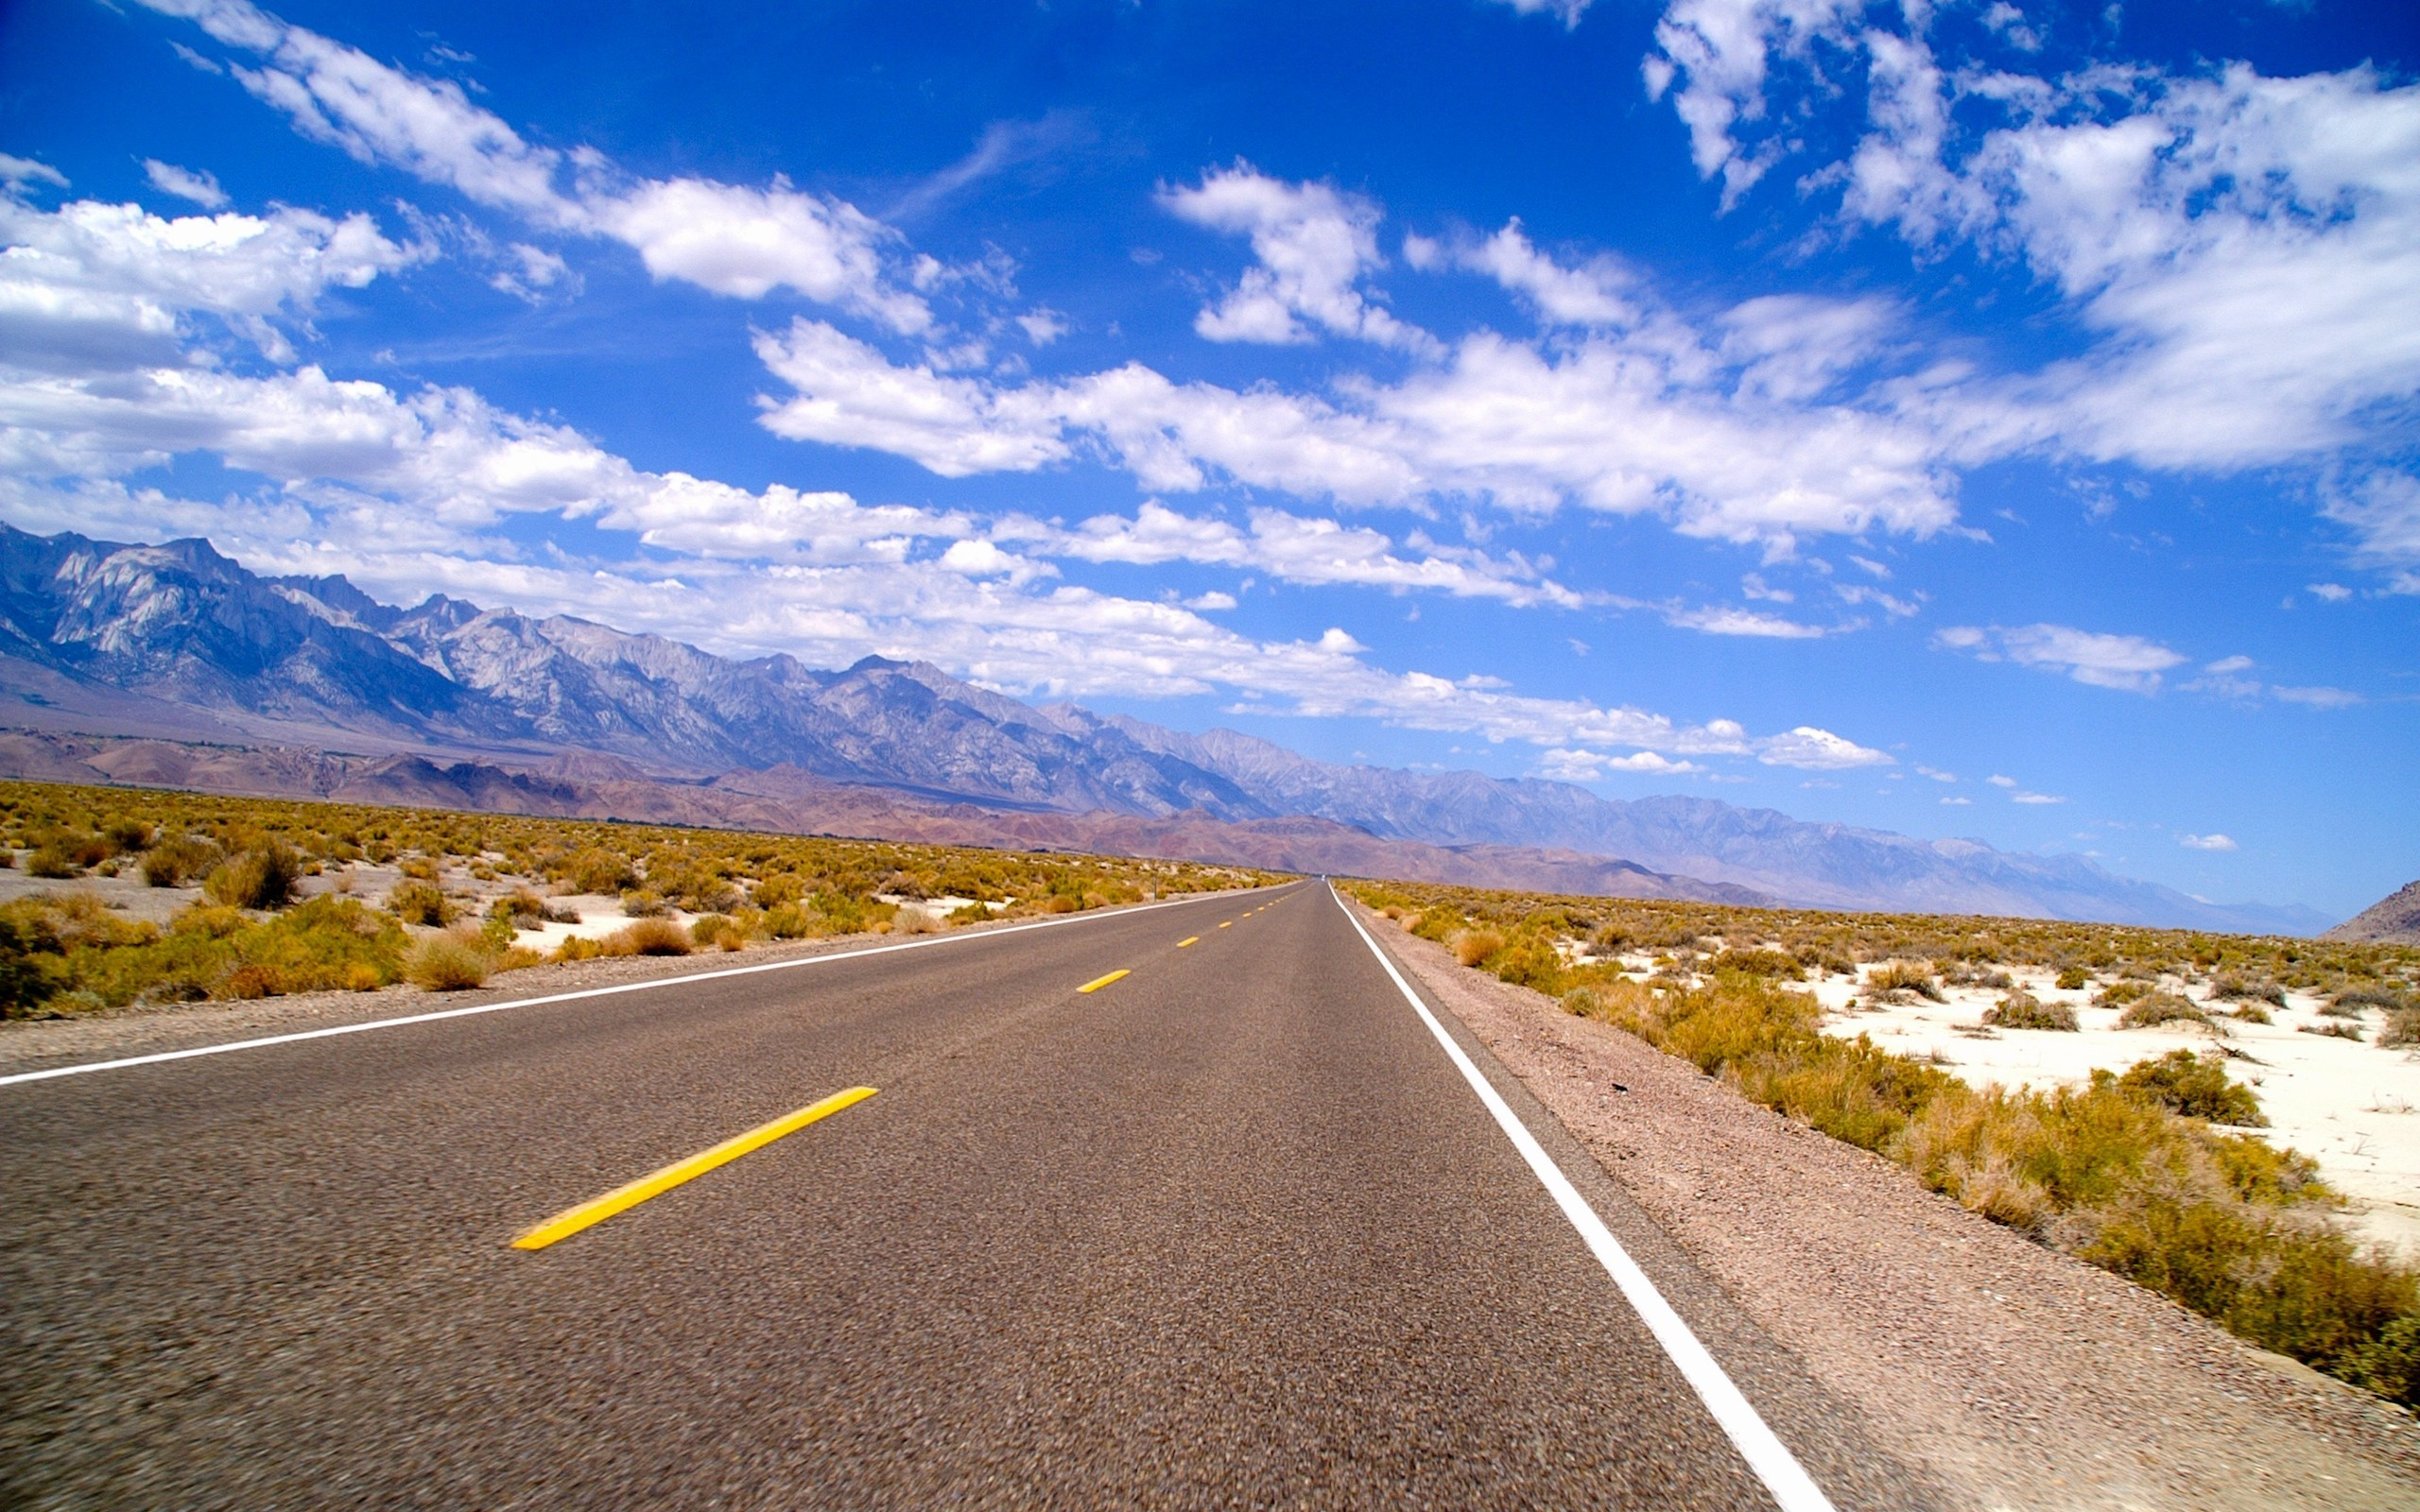 Usa roads death valley wallpaper 15854 for Usa wallpaper